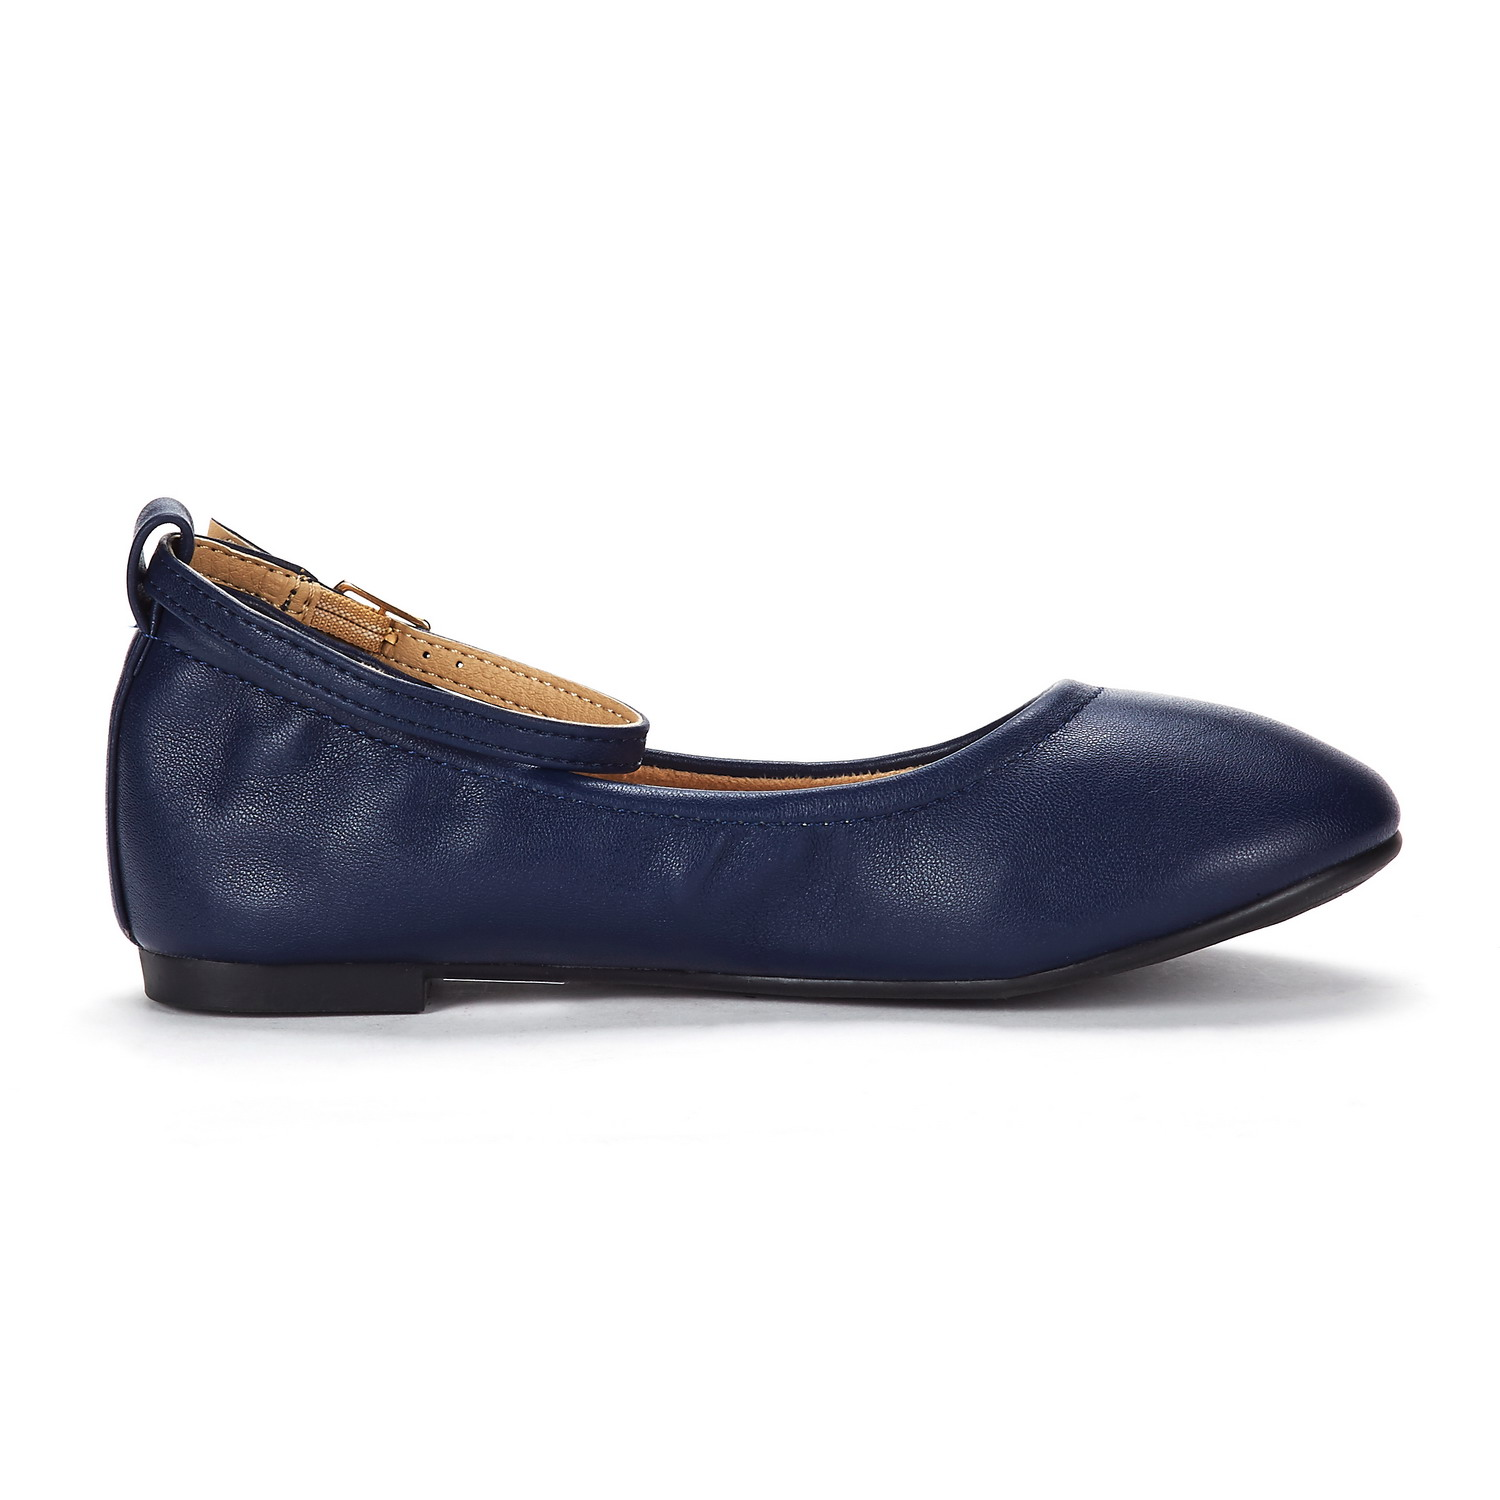 DREAM PAIRS Girls Flat Shoes Casual Dress Shoes Wedding Shoes Mary Jane shoes